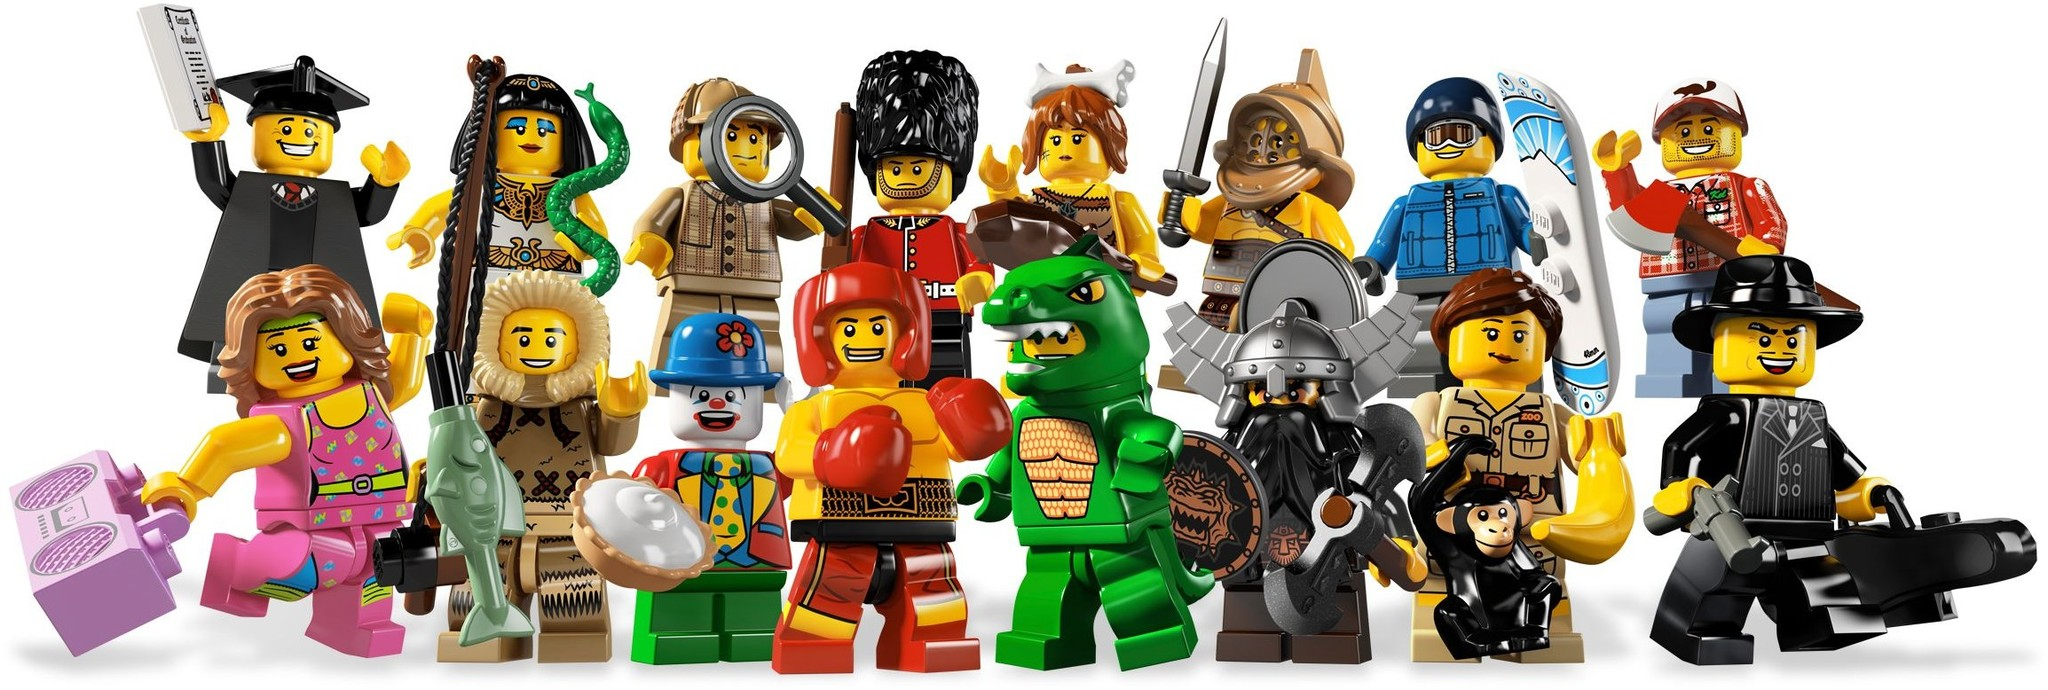 LEGO 8805 - LEGO Minifigures Series 5 Complete Full Set (16 pcs) MISP